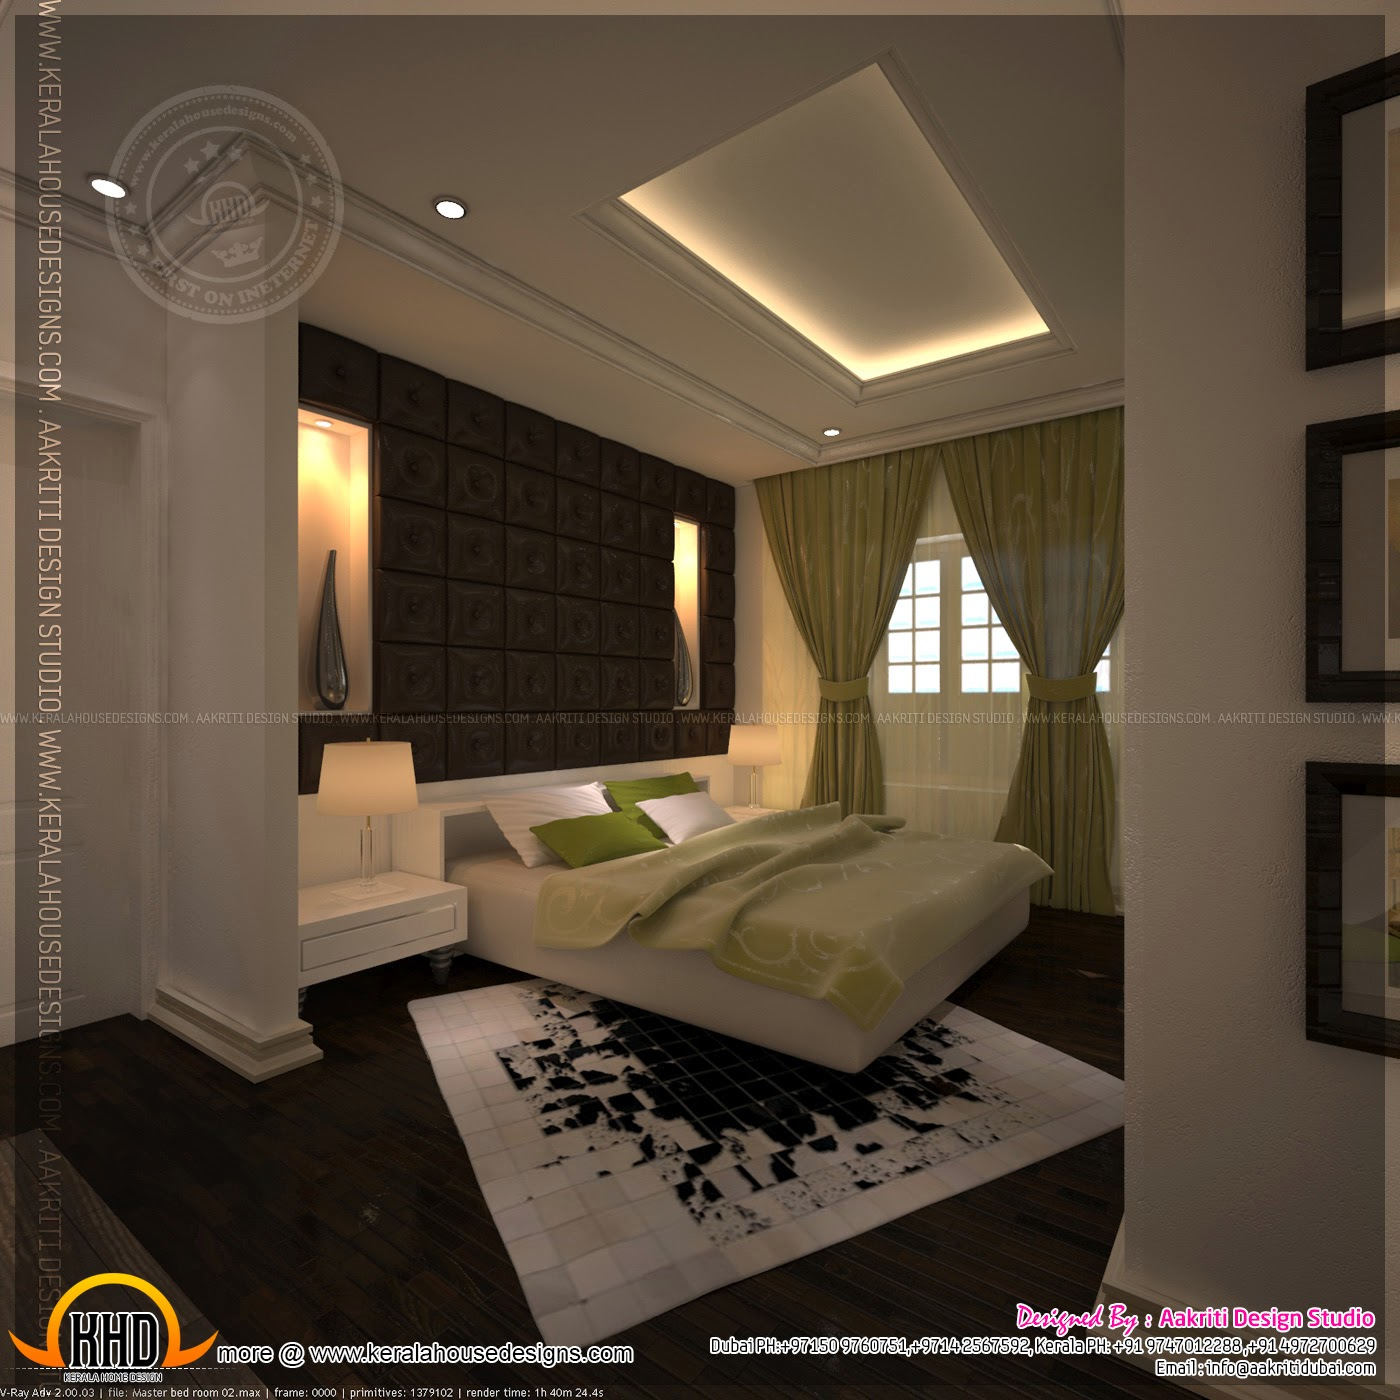 Master bedroom and bathroom interior design kerala home for Interior design bedroom 3x3